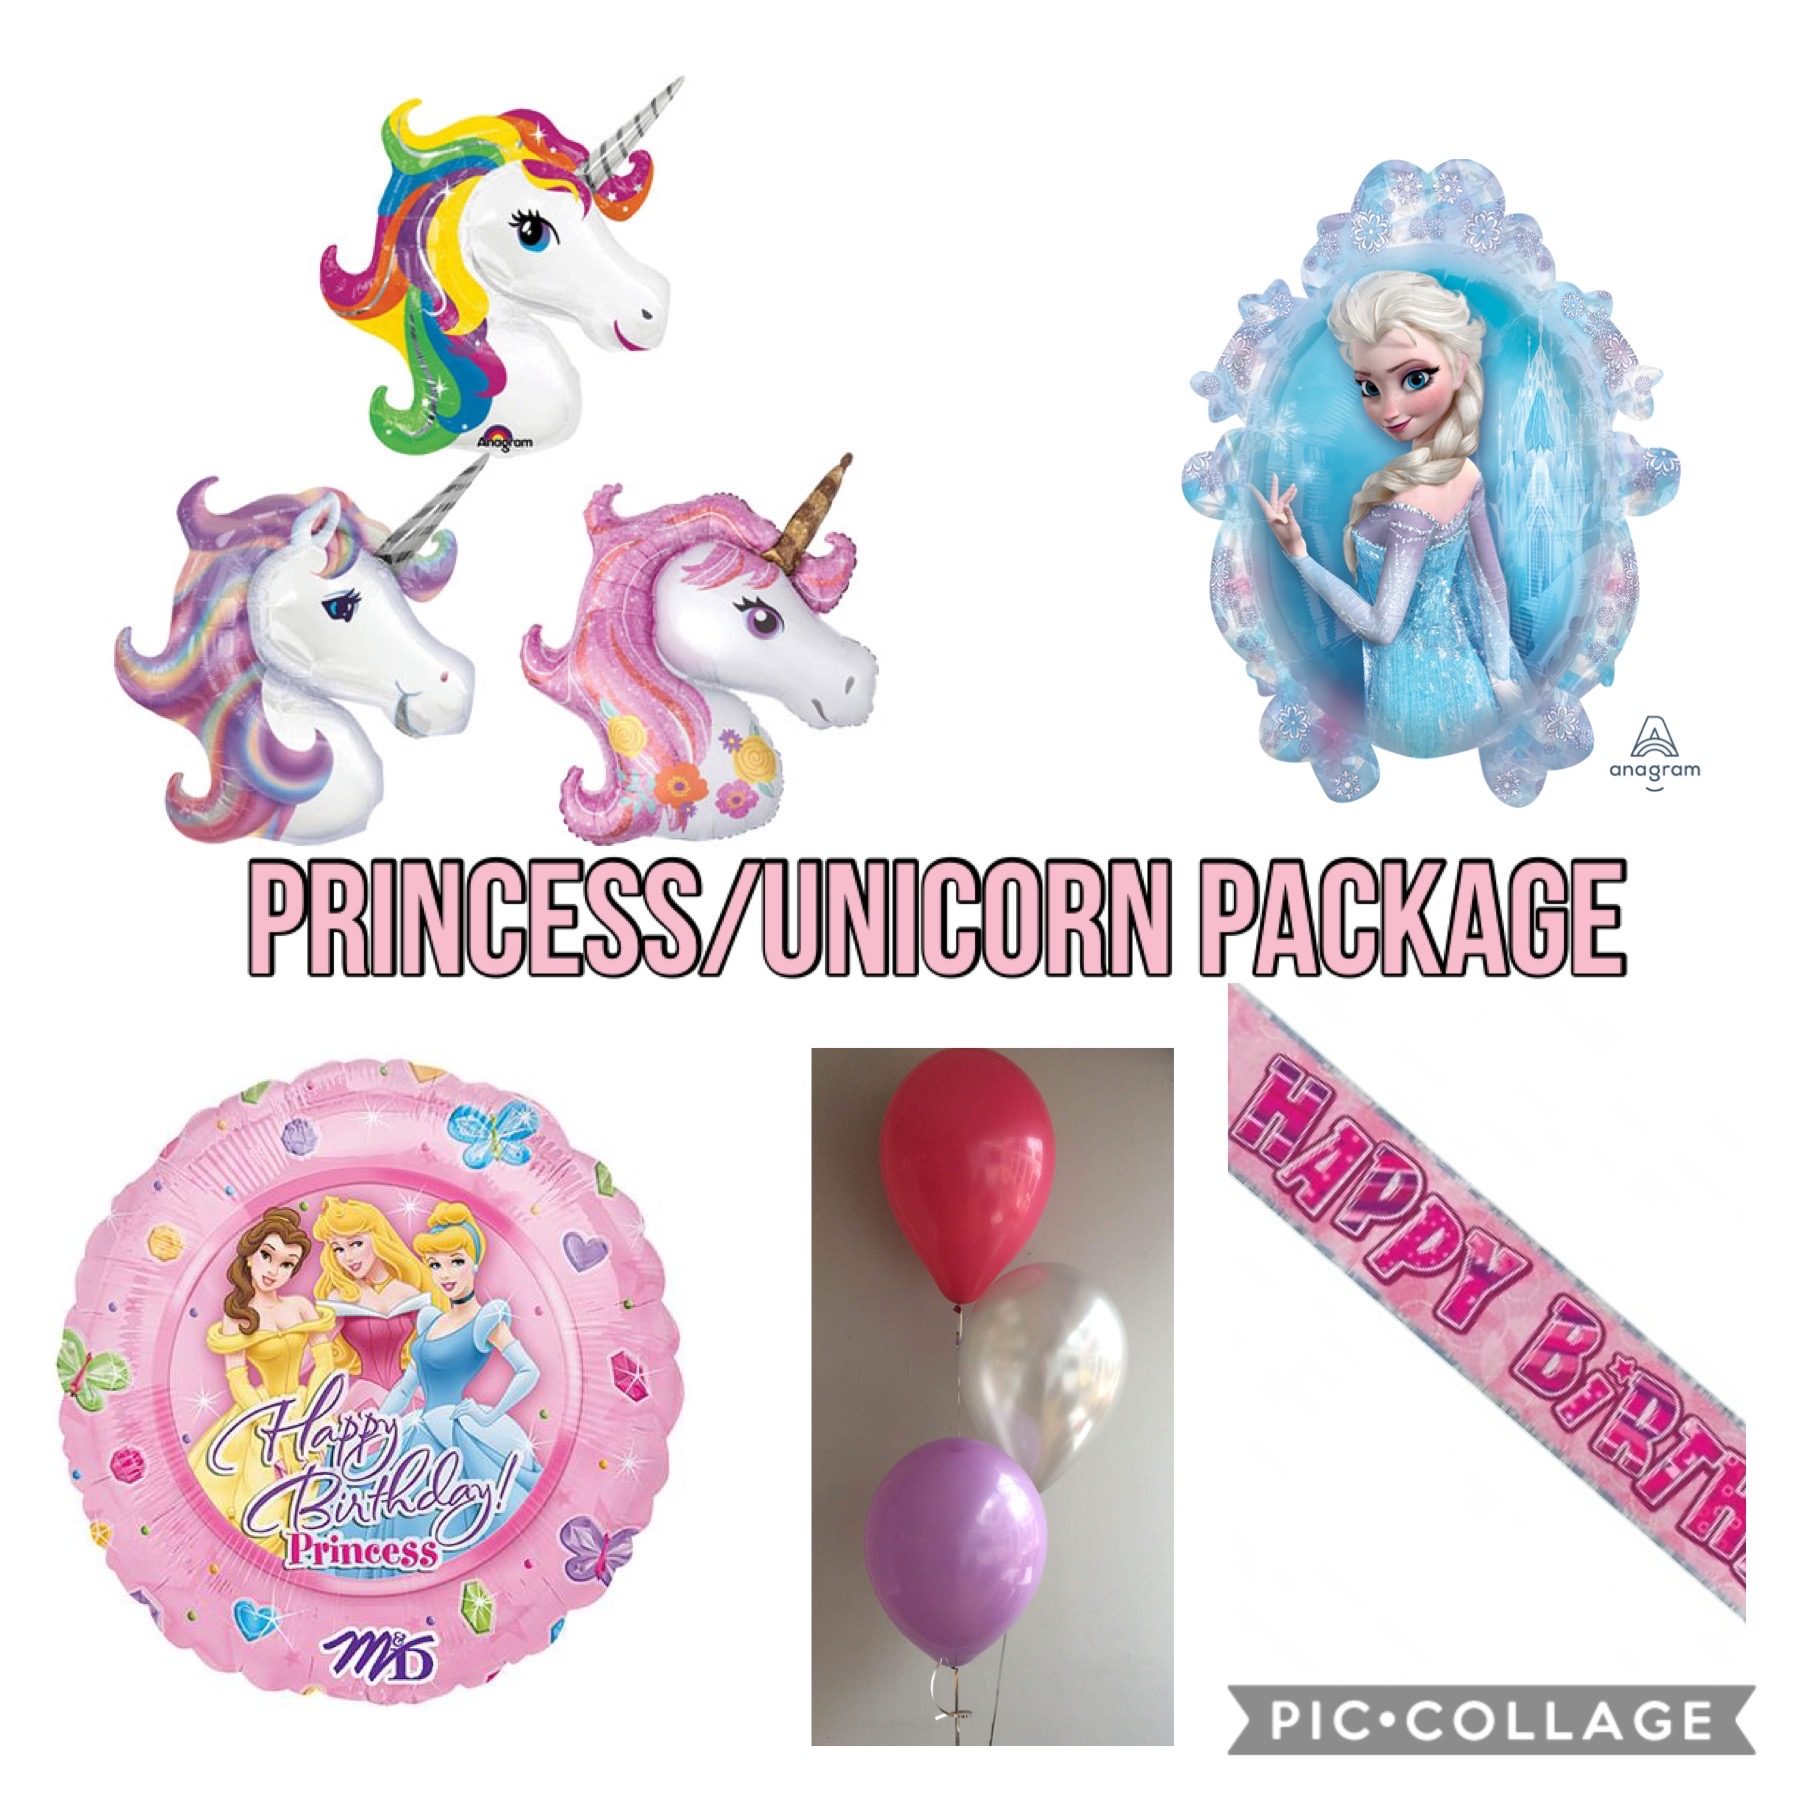 PRINCESS OR UNICORN PACKAGE